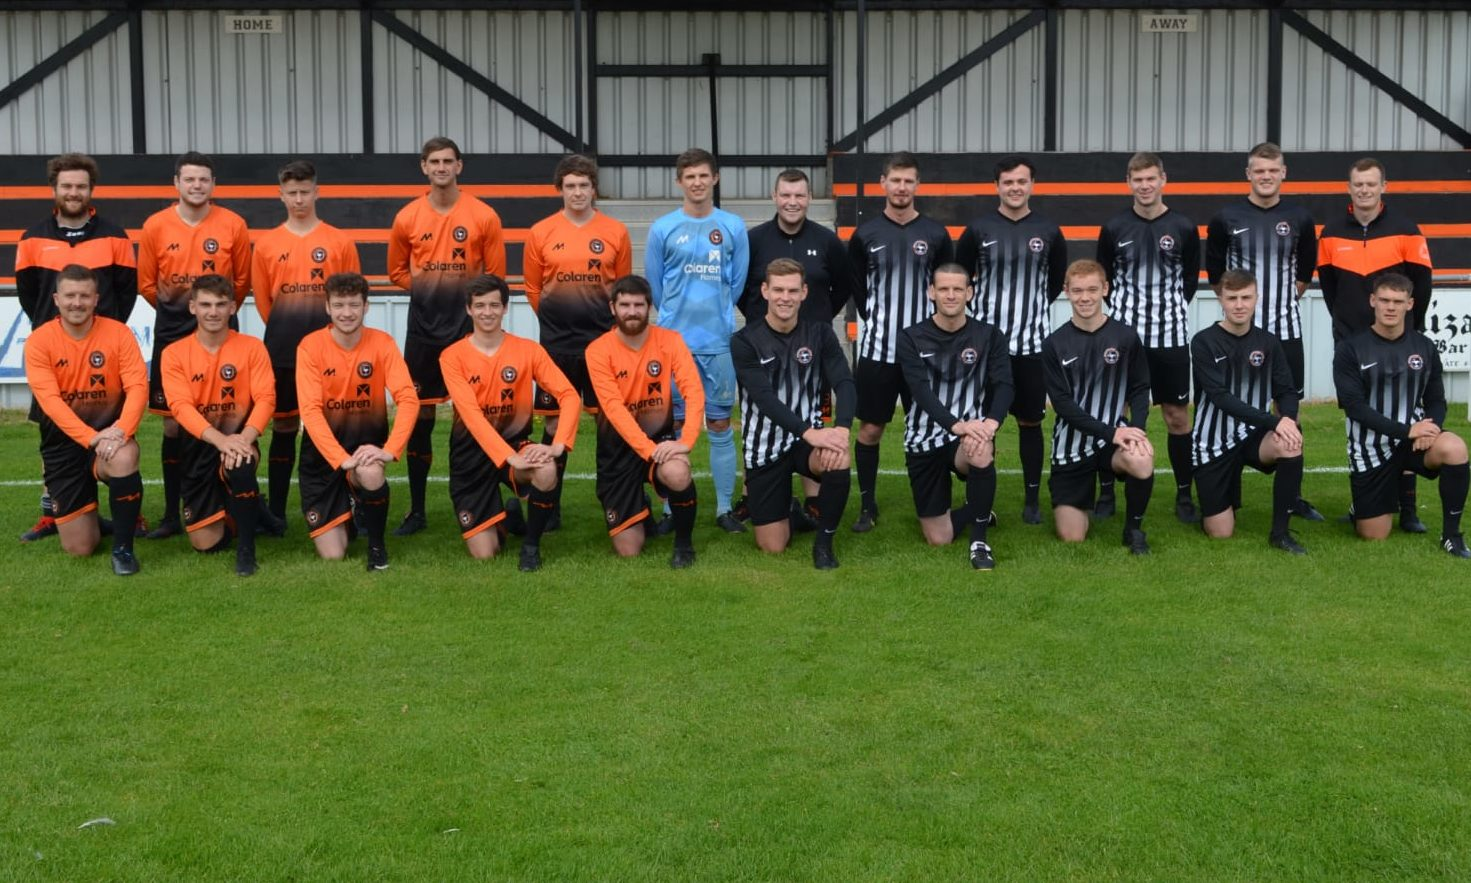 Fraserburgh United FC took part in a 24 hour run to raise funds for the Salvation Army food bank.